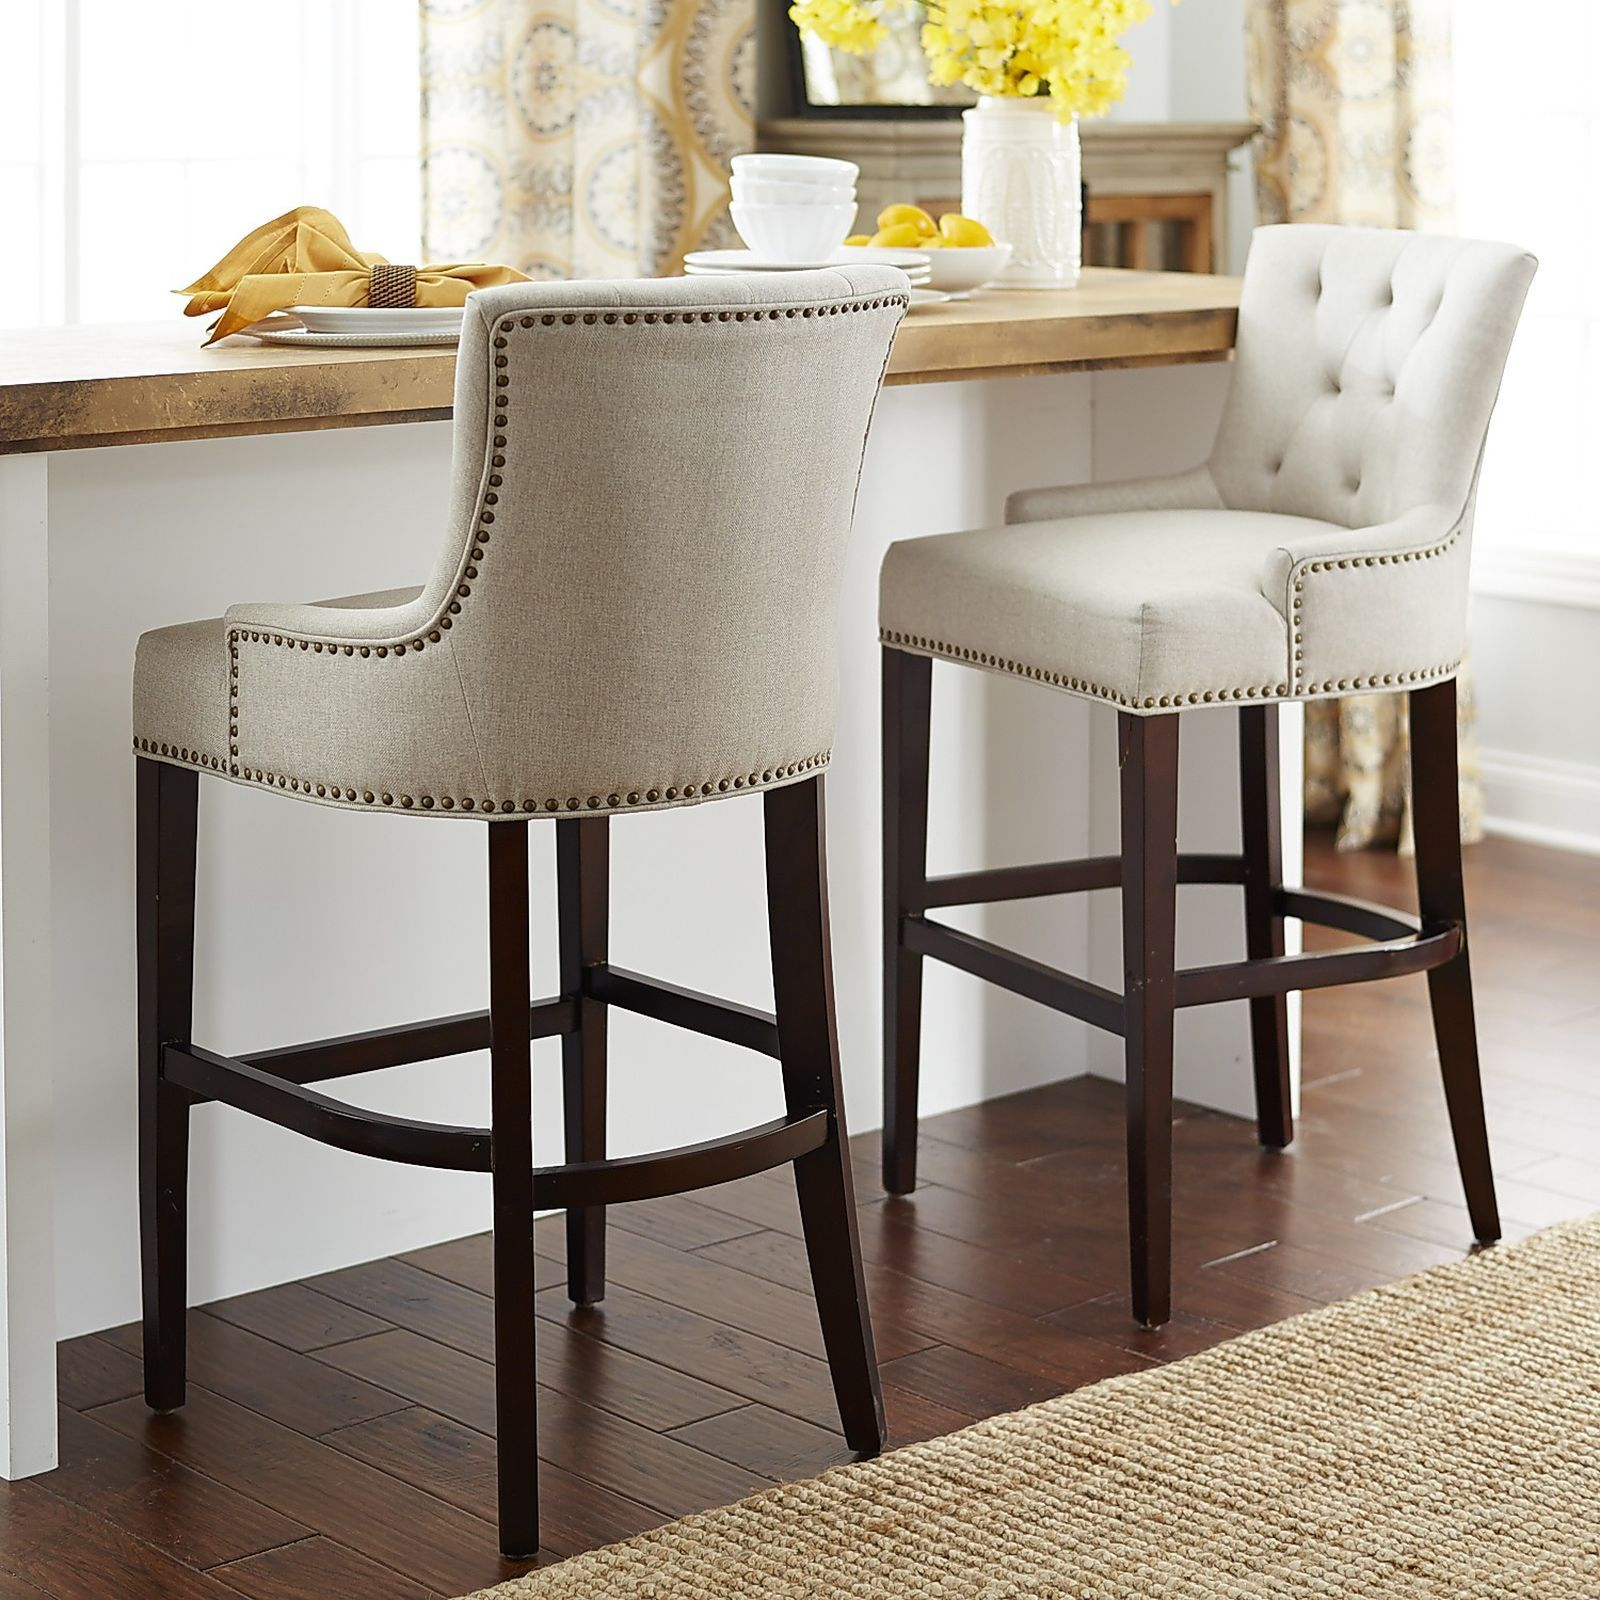 chairs for kitchen island ada cabinets ava flax counter bar stool stools our offer a most elegant perch classic tailoring includes comfortable contoured back with deep button tufting low slung swoop armrests